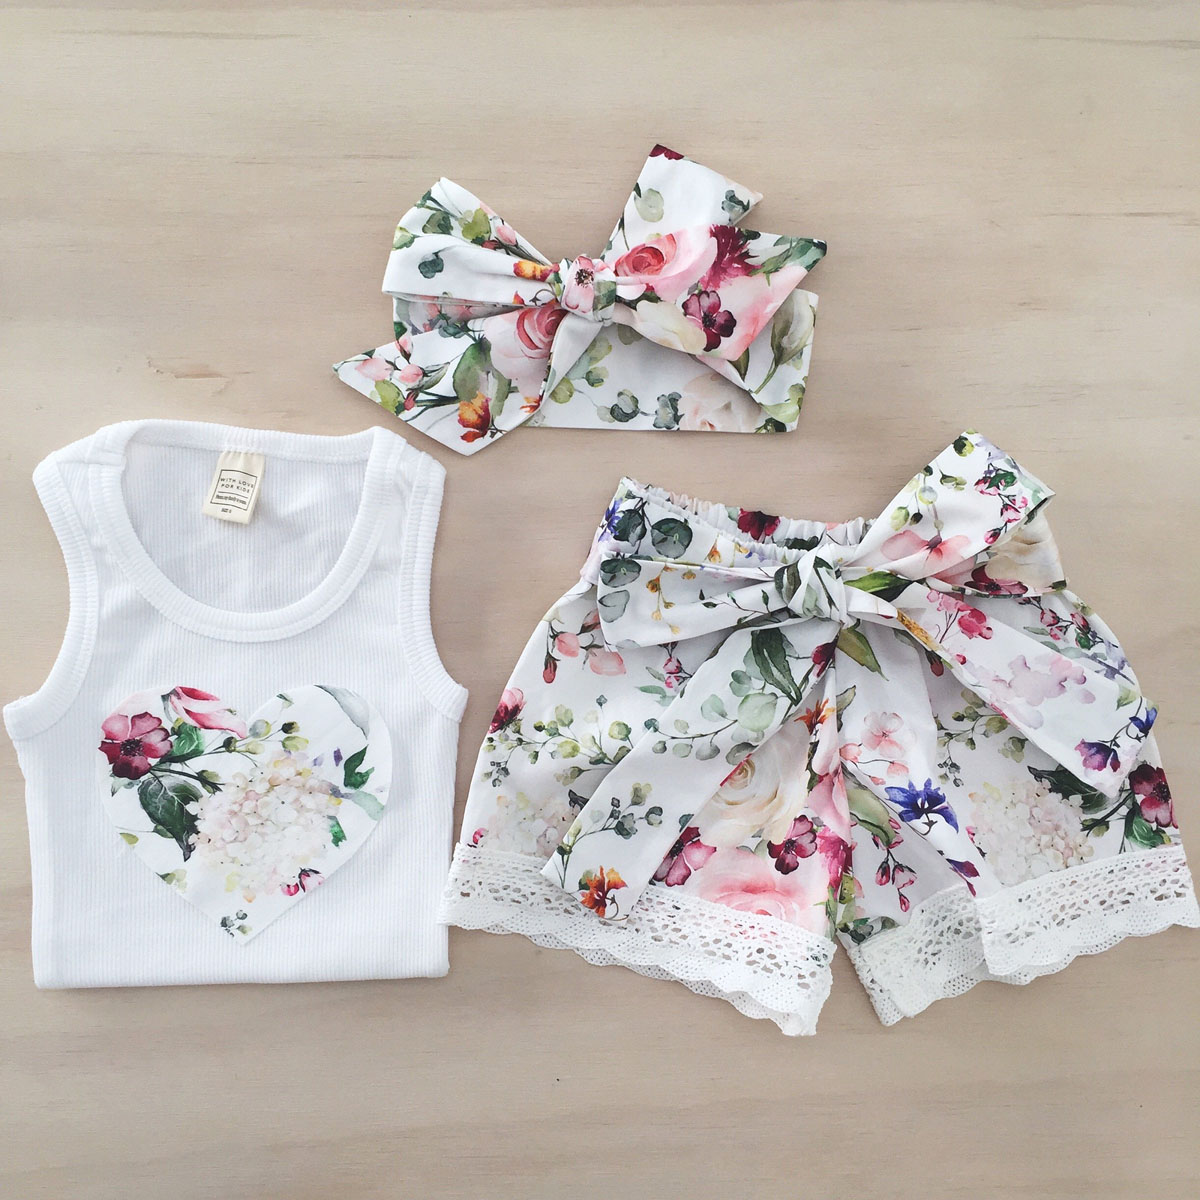 Toddler Kid Baby Girls Floral Summer Tops Vest Pants Shorts Outfits Clothes Set